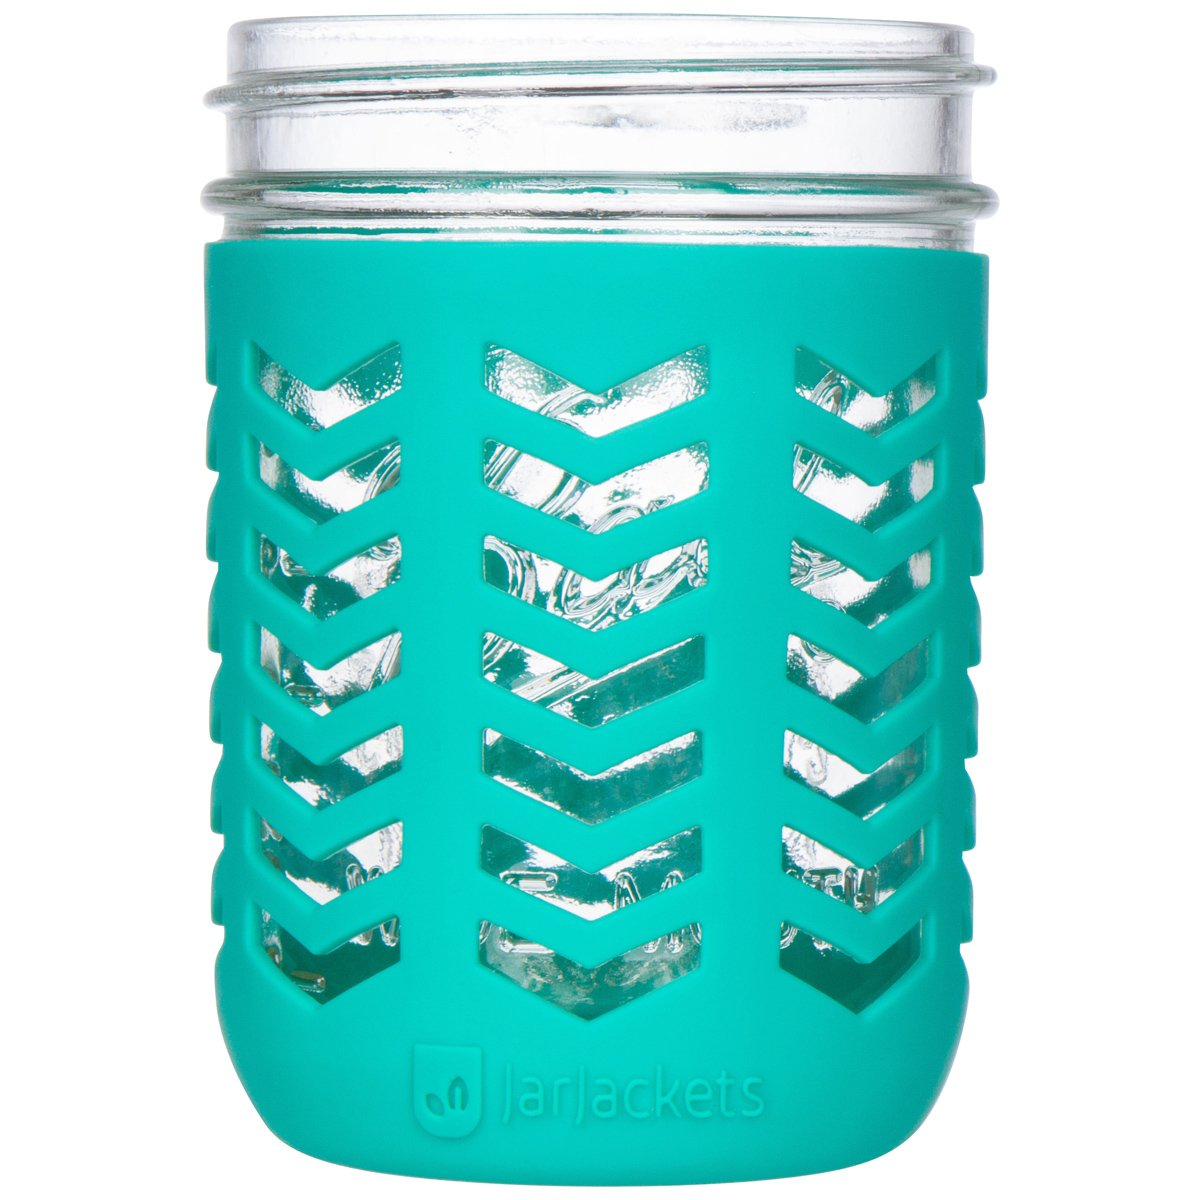 protect mason jar with silicone sleeves pint size wide mouth